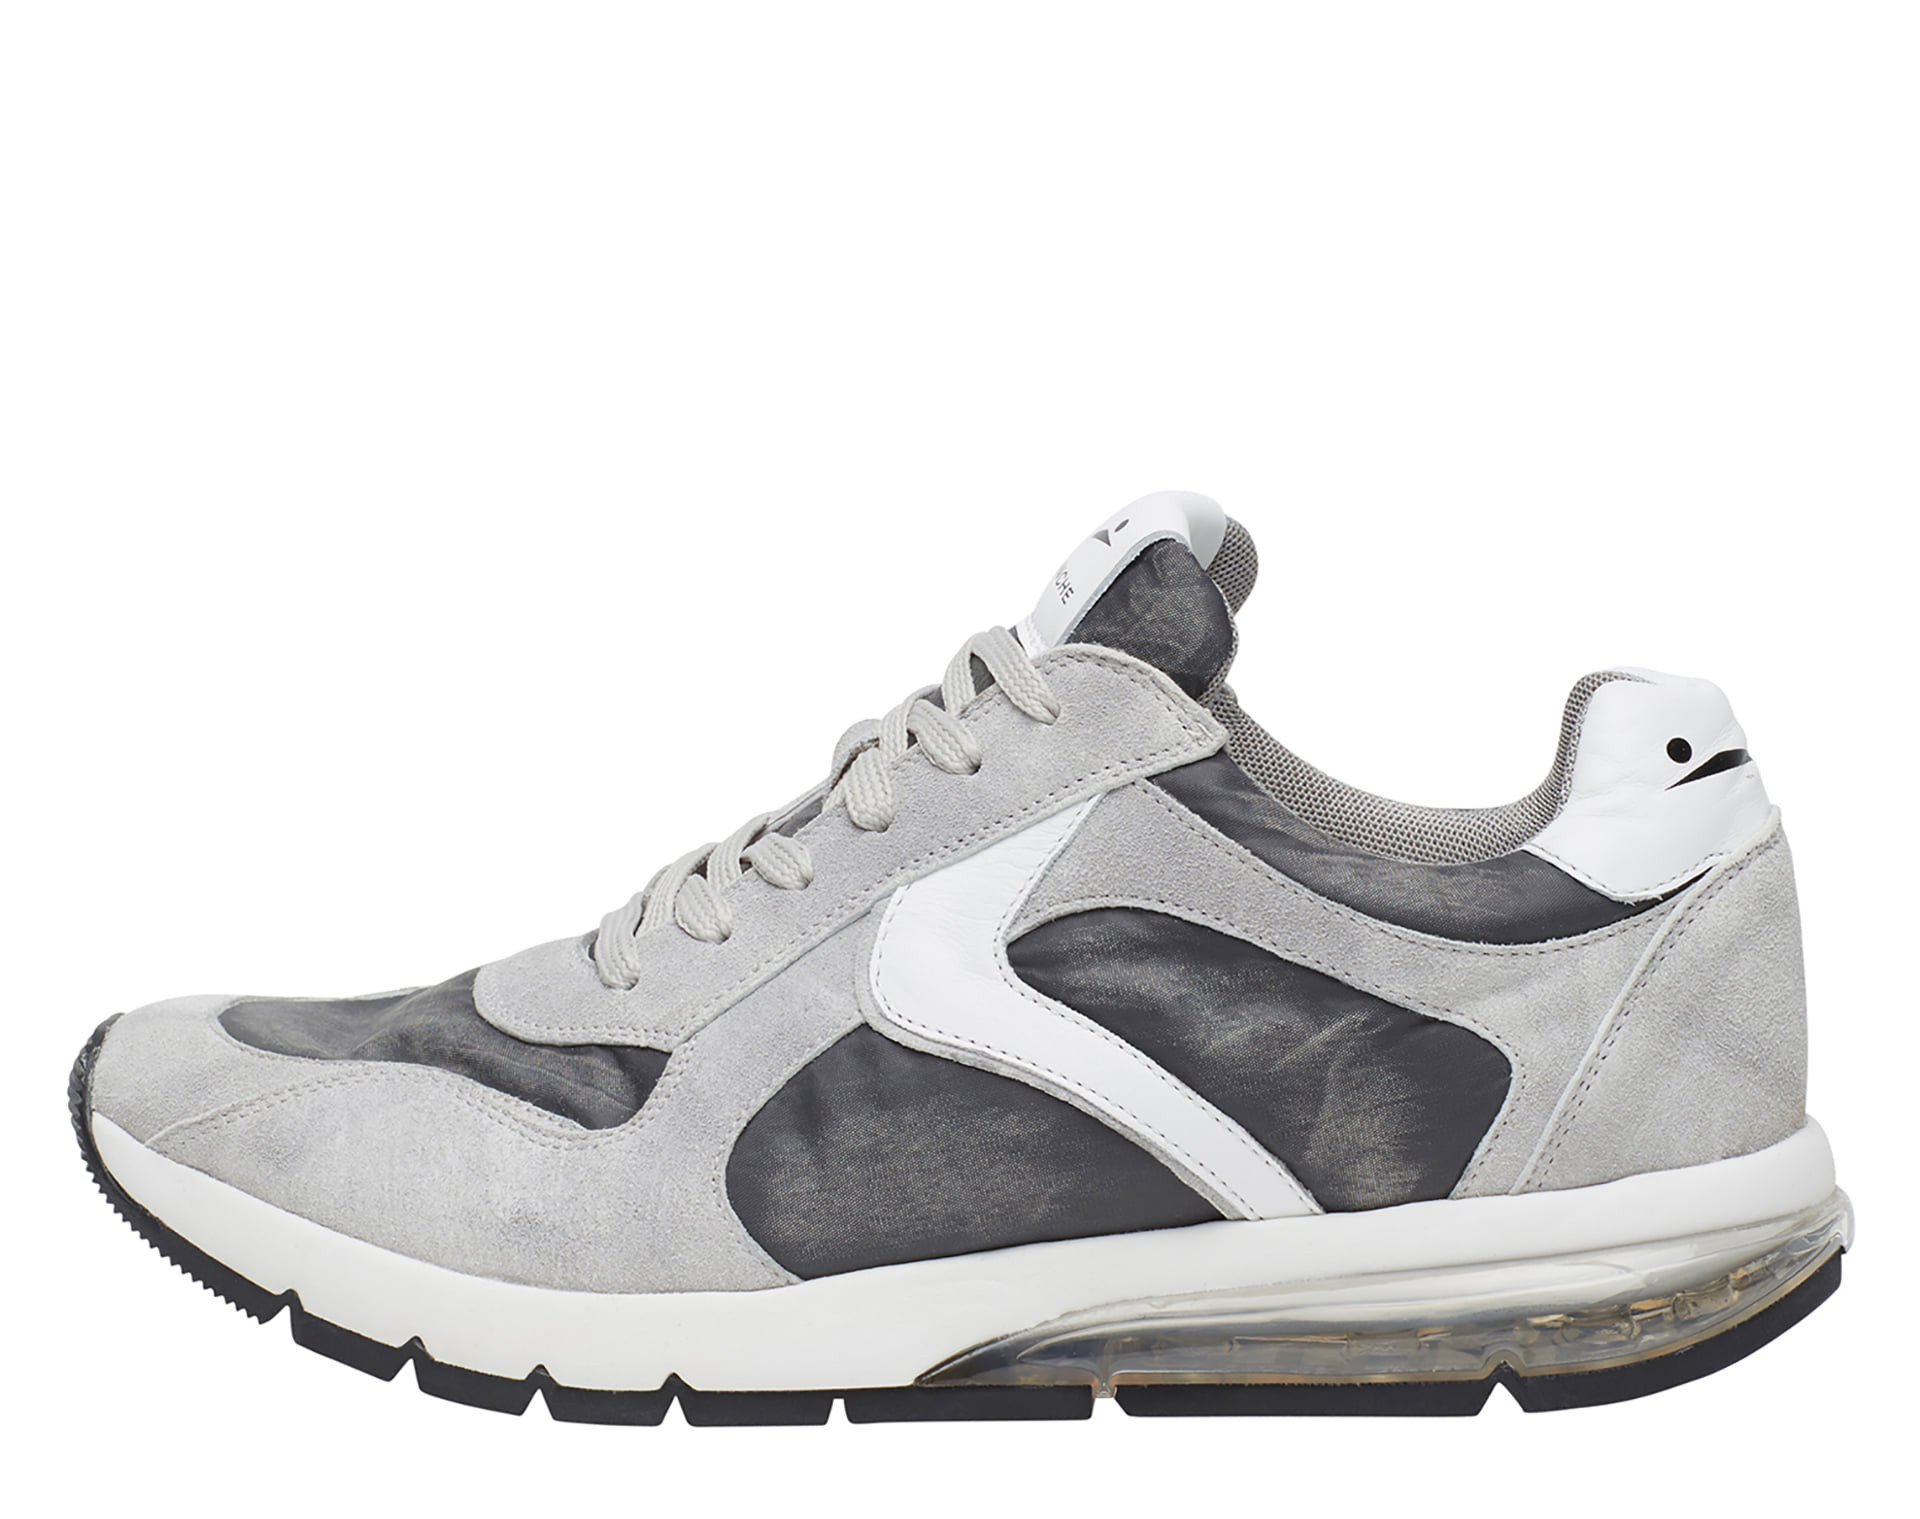 ARGO - Leather and nylon sneakers - Ice grey